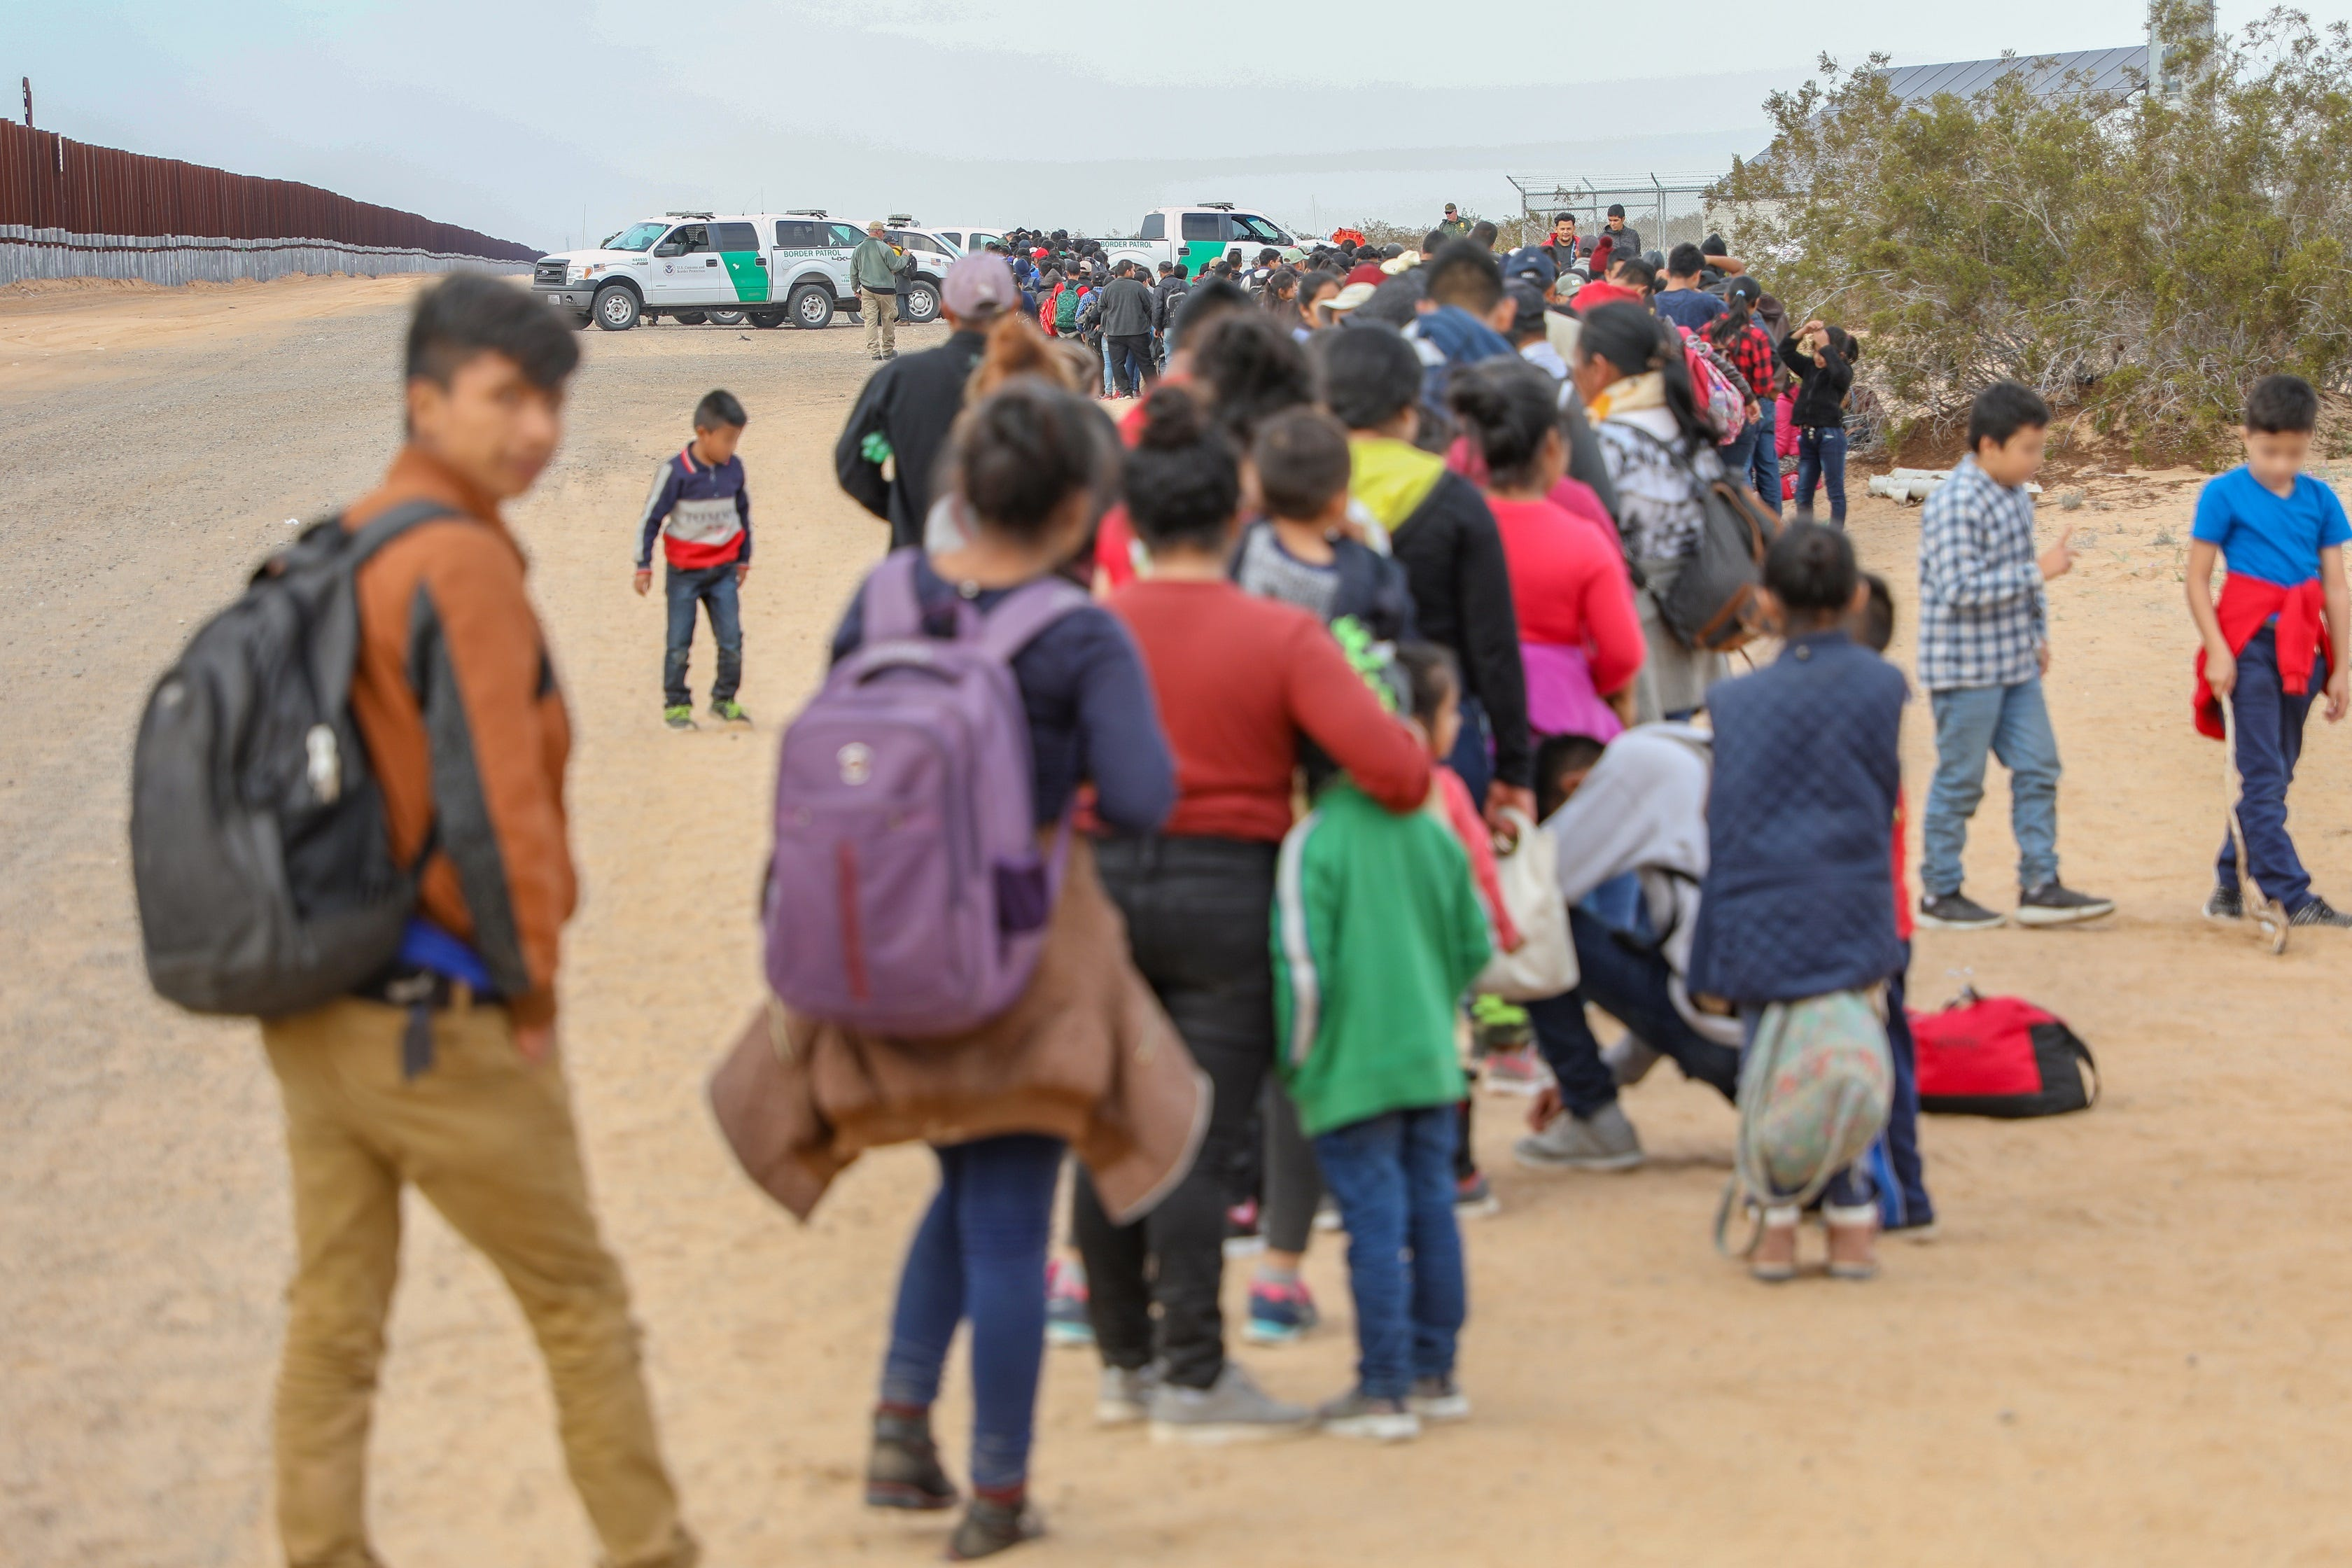 Largest-ever group of migrant families tunnels under Yuma, Arizona, border fence